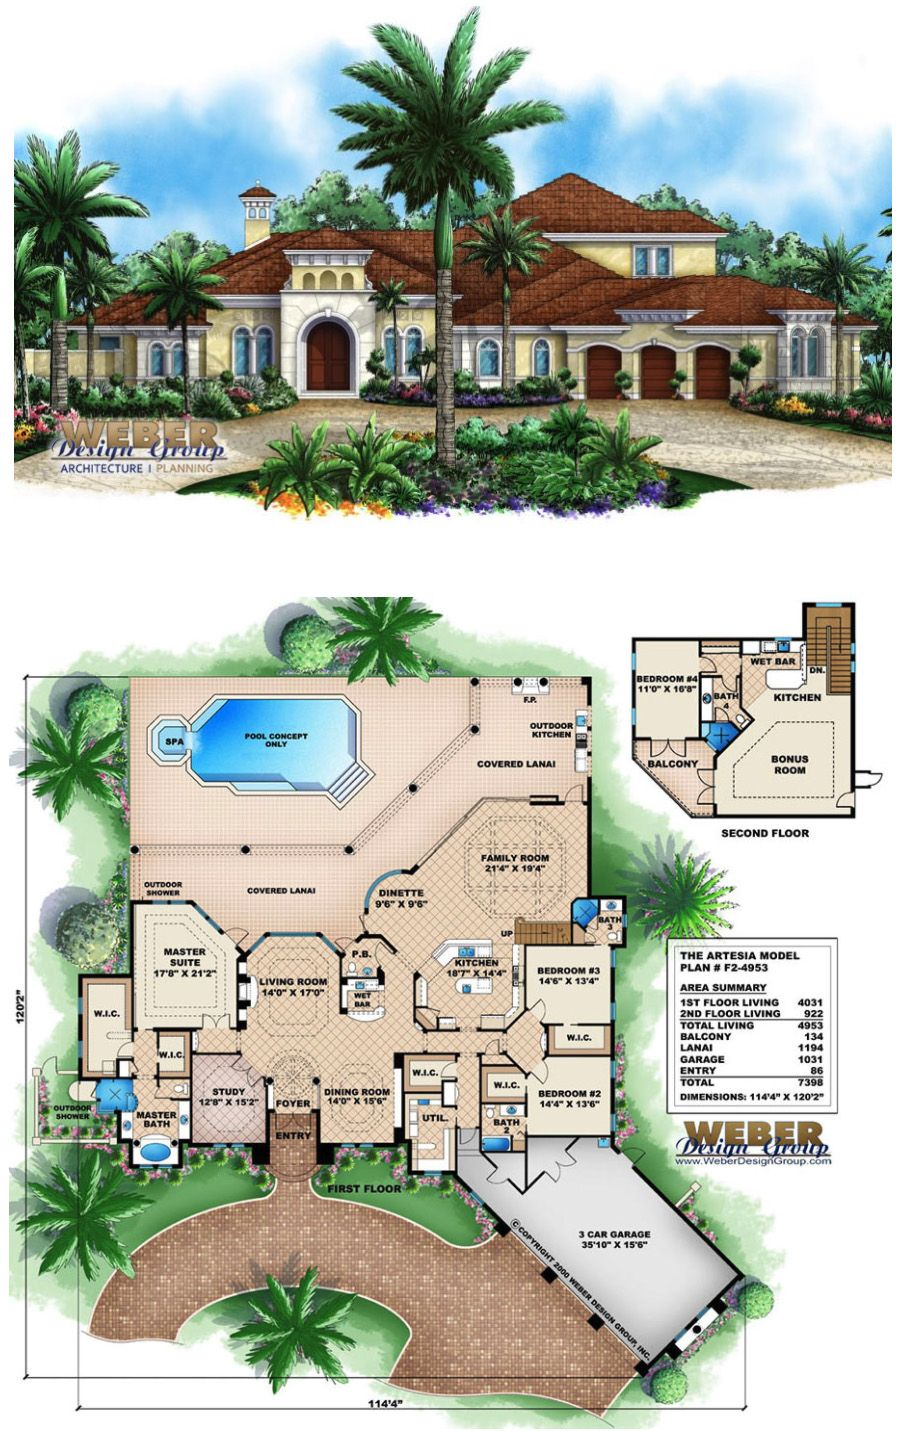 Mediterranean House Plan 2 Floor Mediterranean Home Floor Plan House Plans Mediterranean House Plans House Blueprints